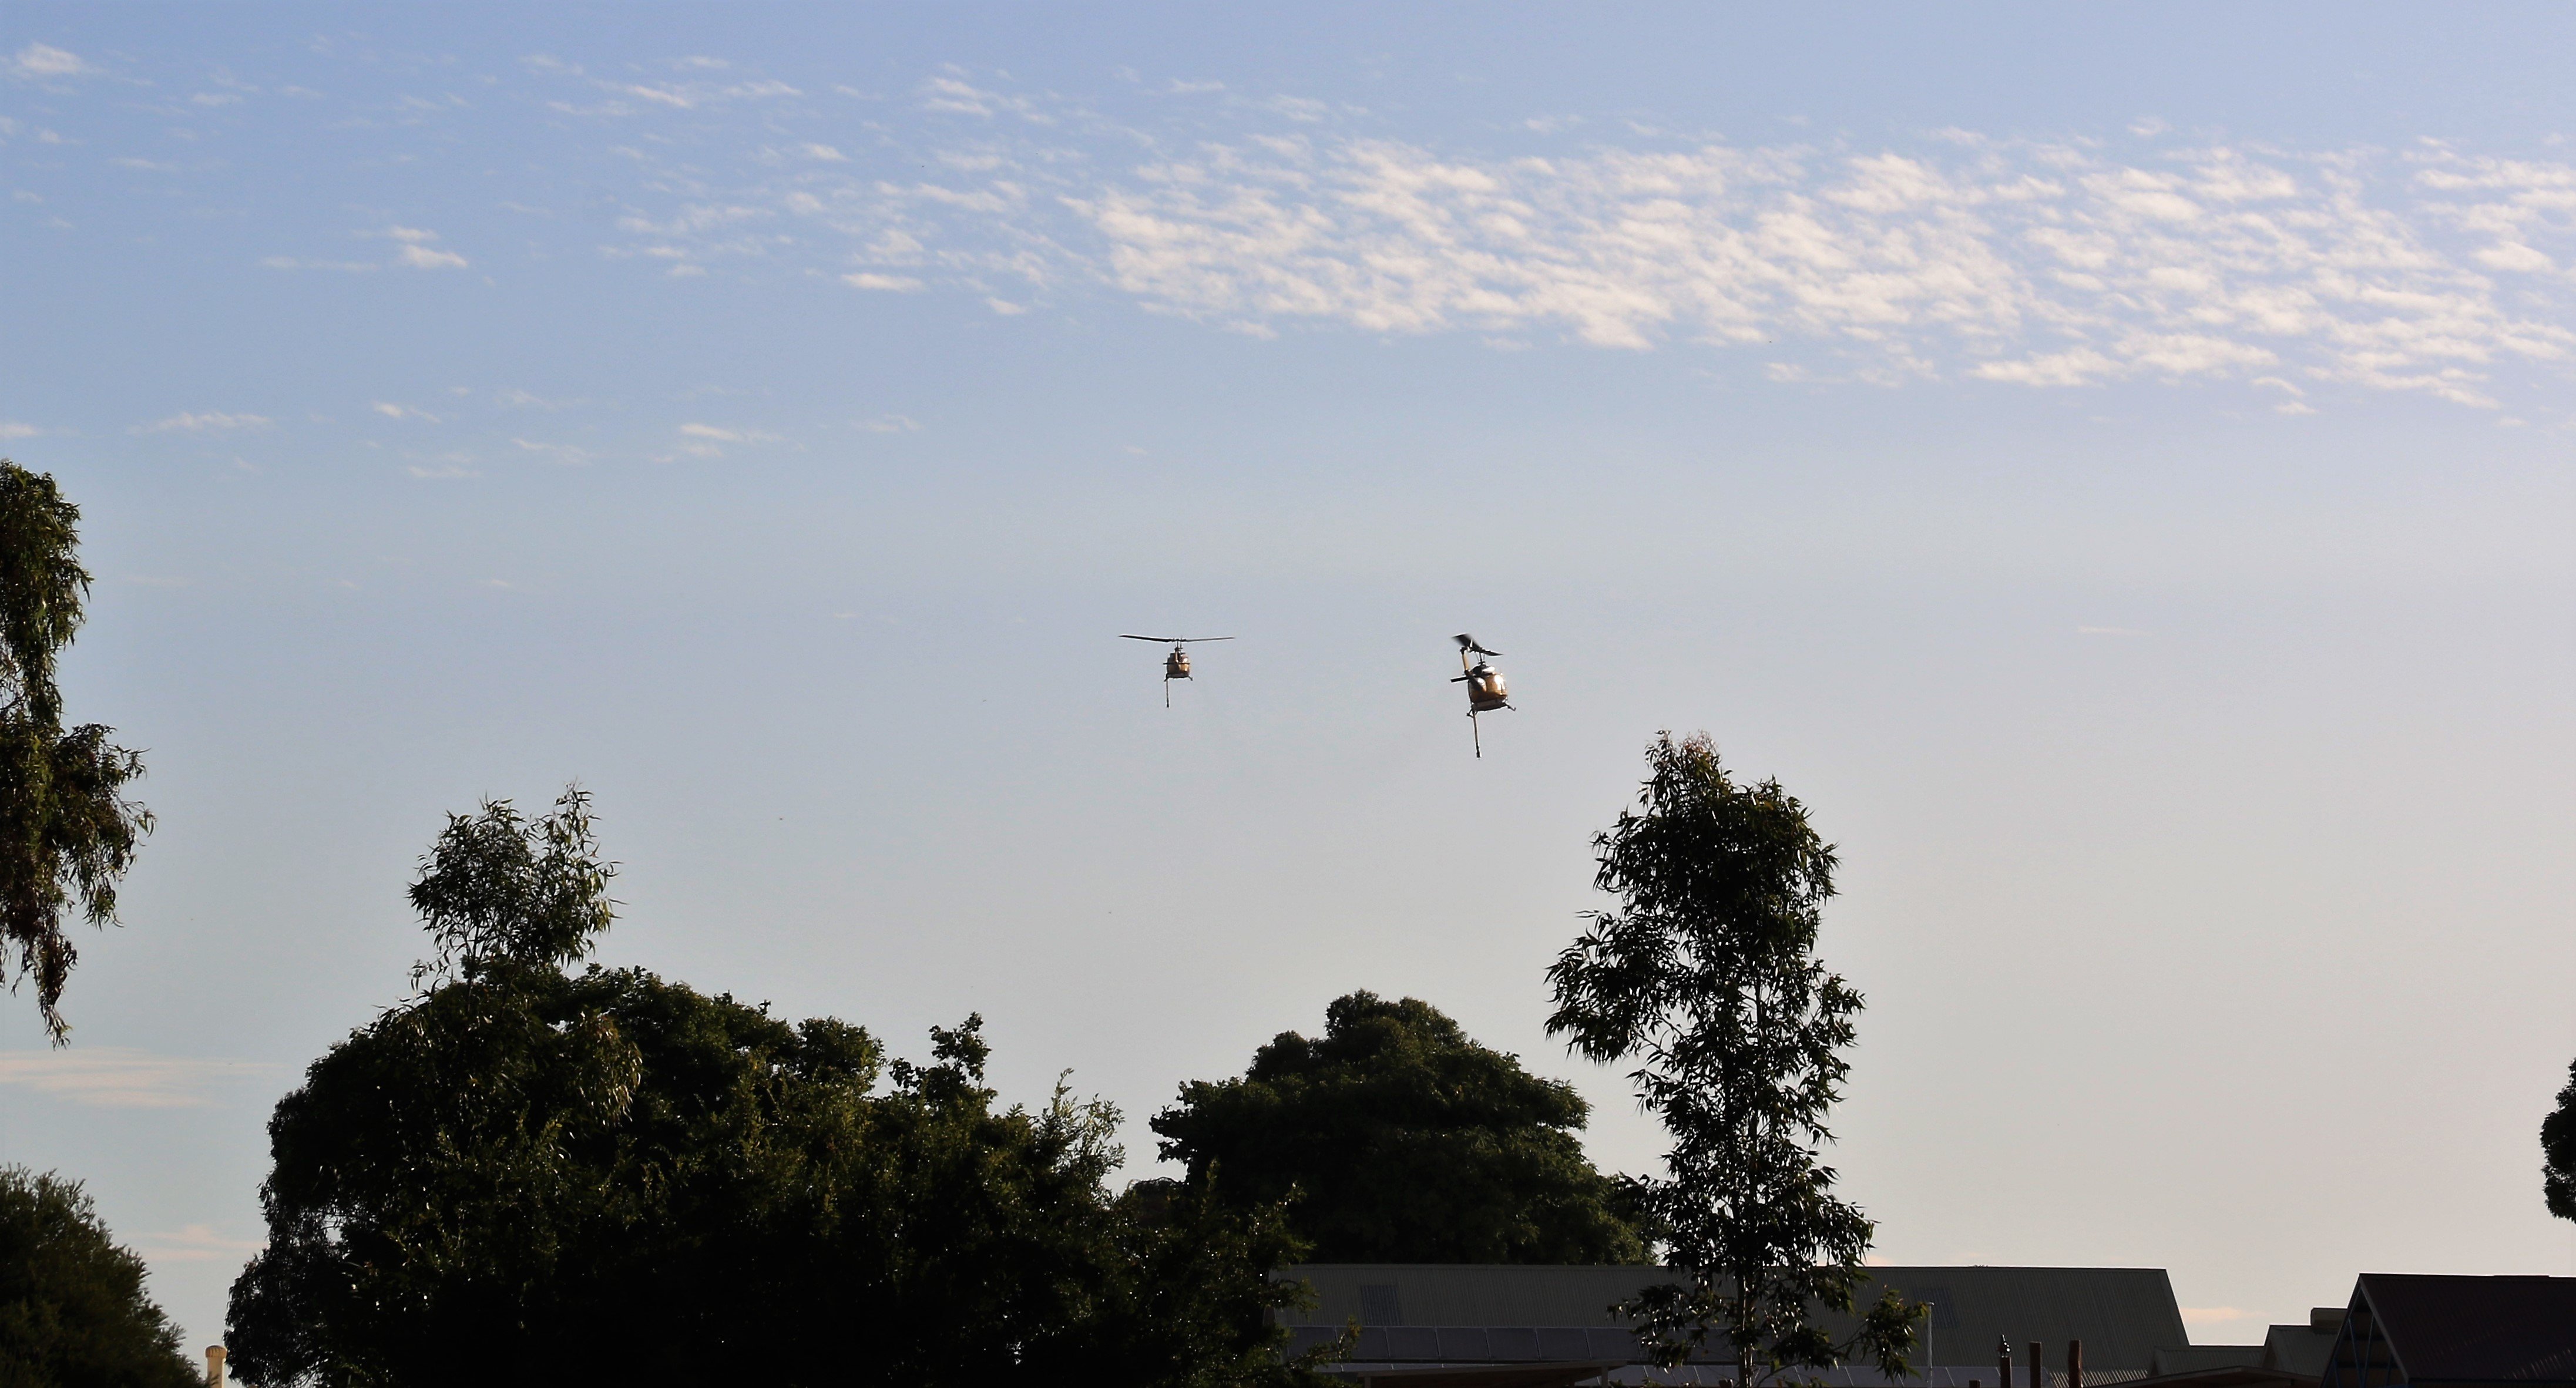 Helicopters - Bushfire - Near Waterperry Drive, Perth WA.